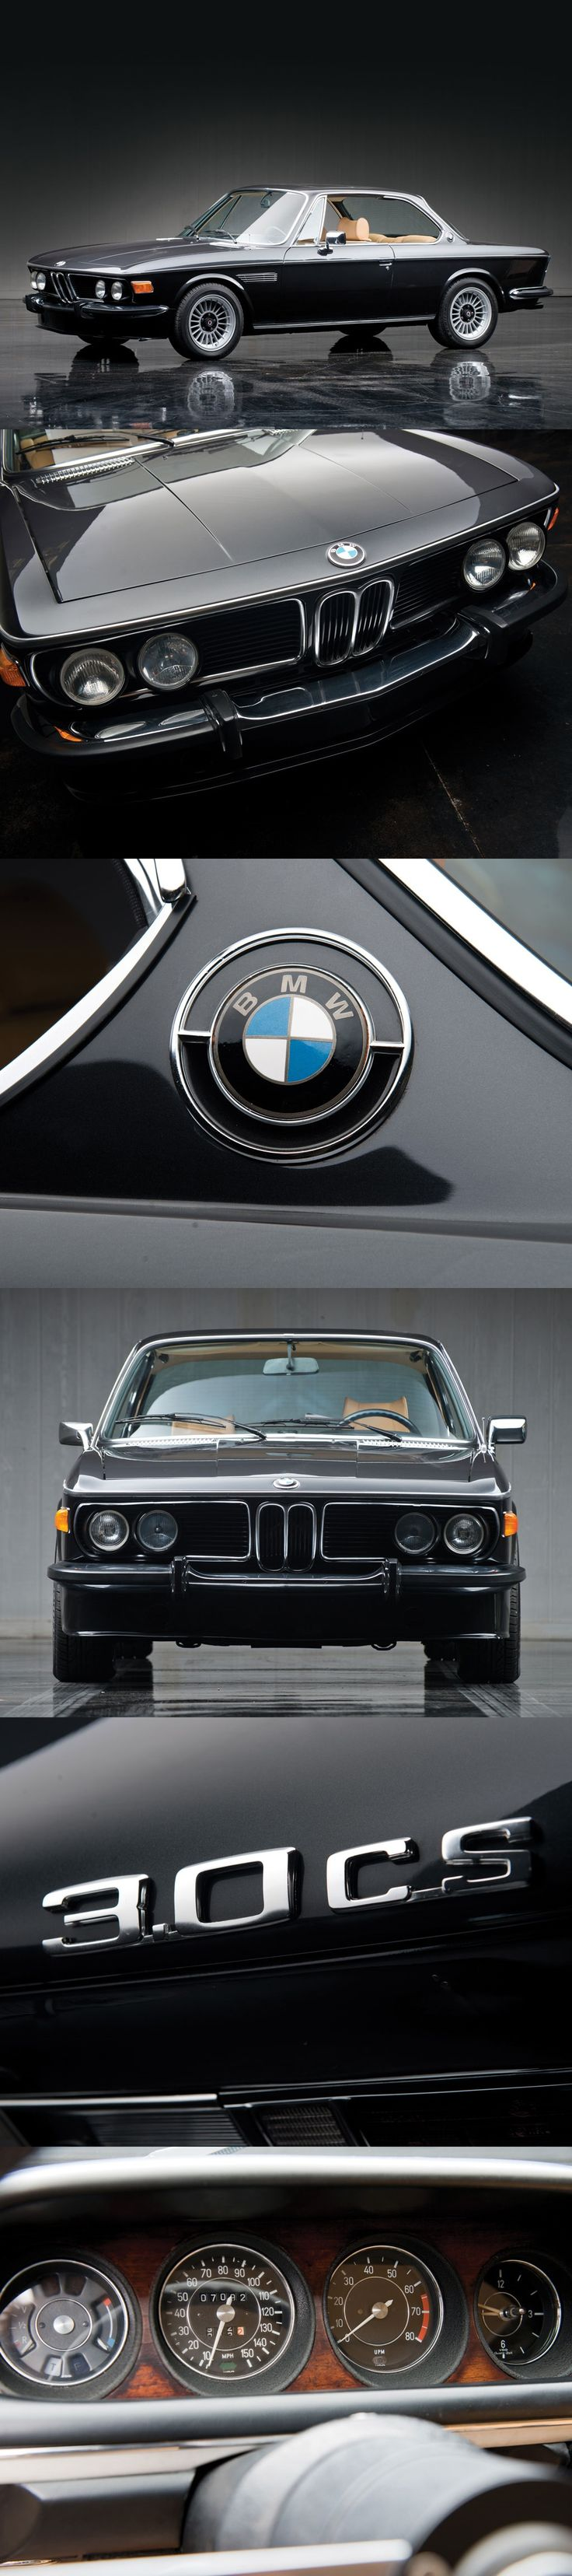 1974 BMW 3.0 CS. Coupe perfection & BMW high point in a horrible era for automobile design.